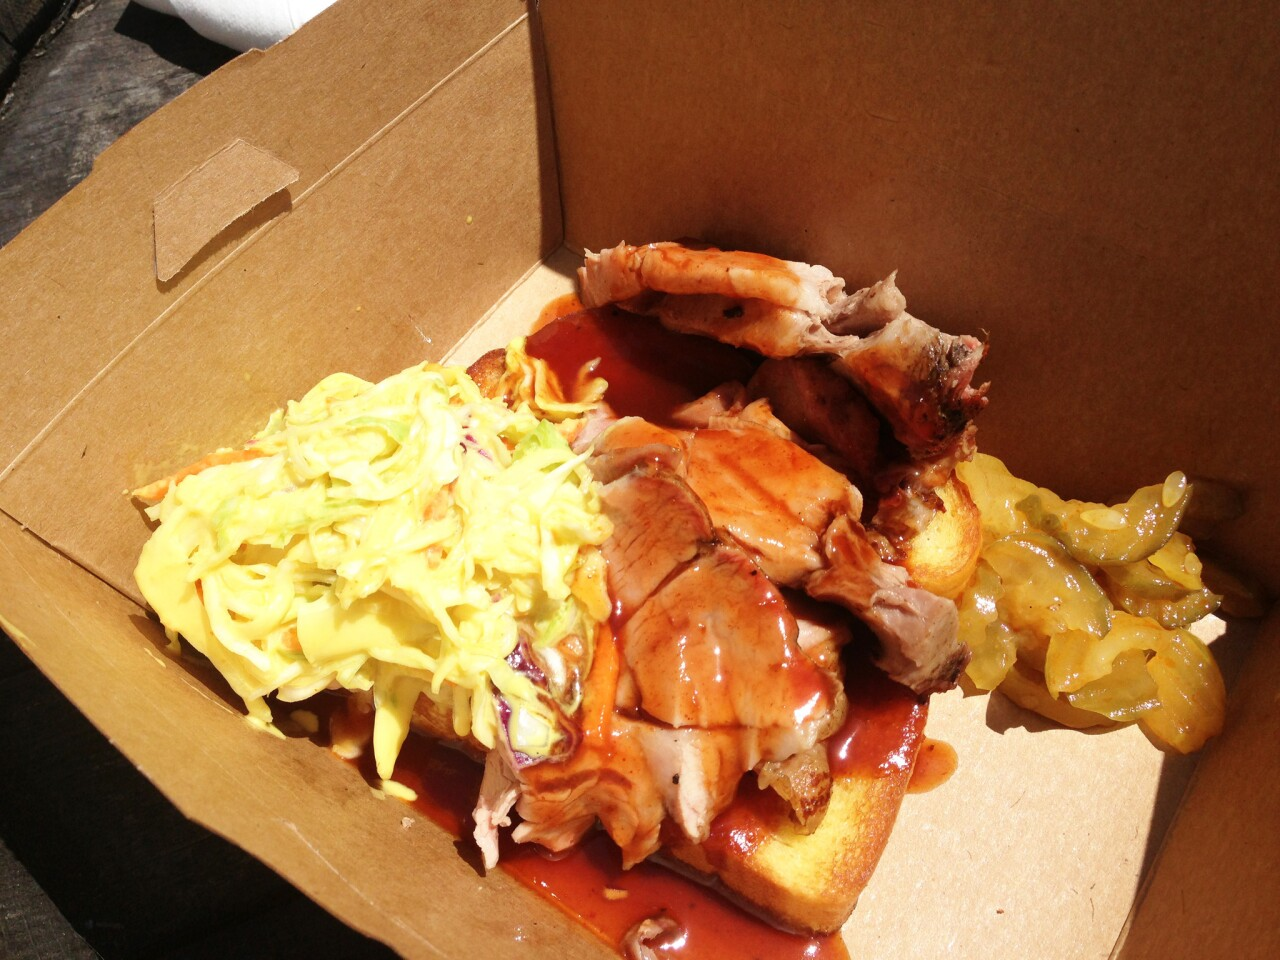 The Pork plate with Texas toast, spicy pickles and coleslaw.